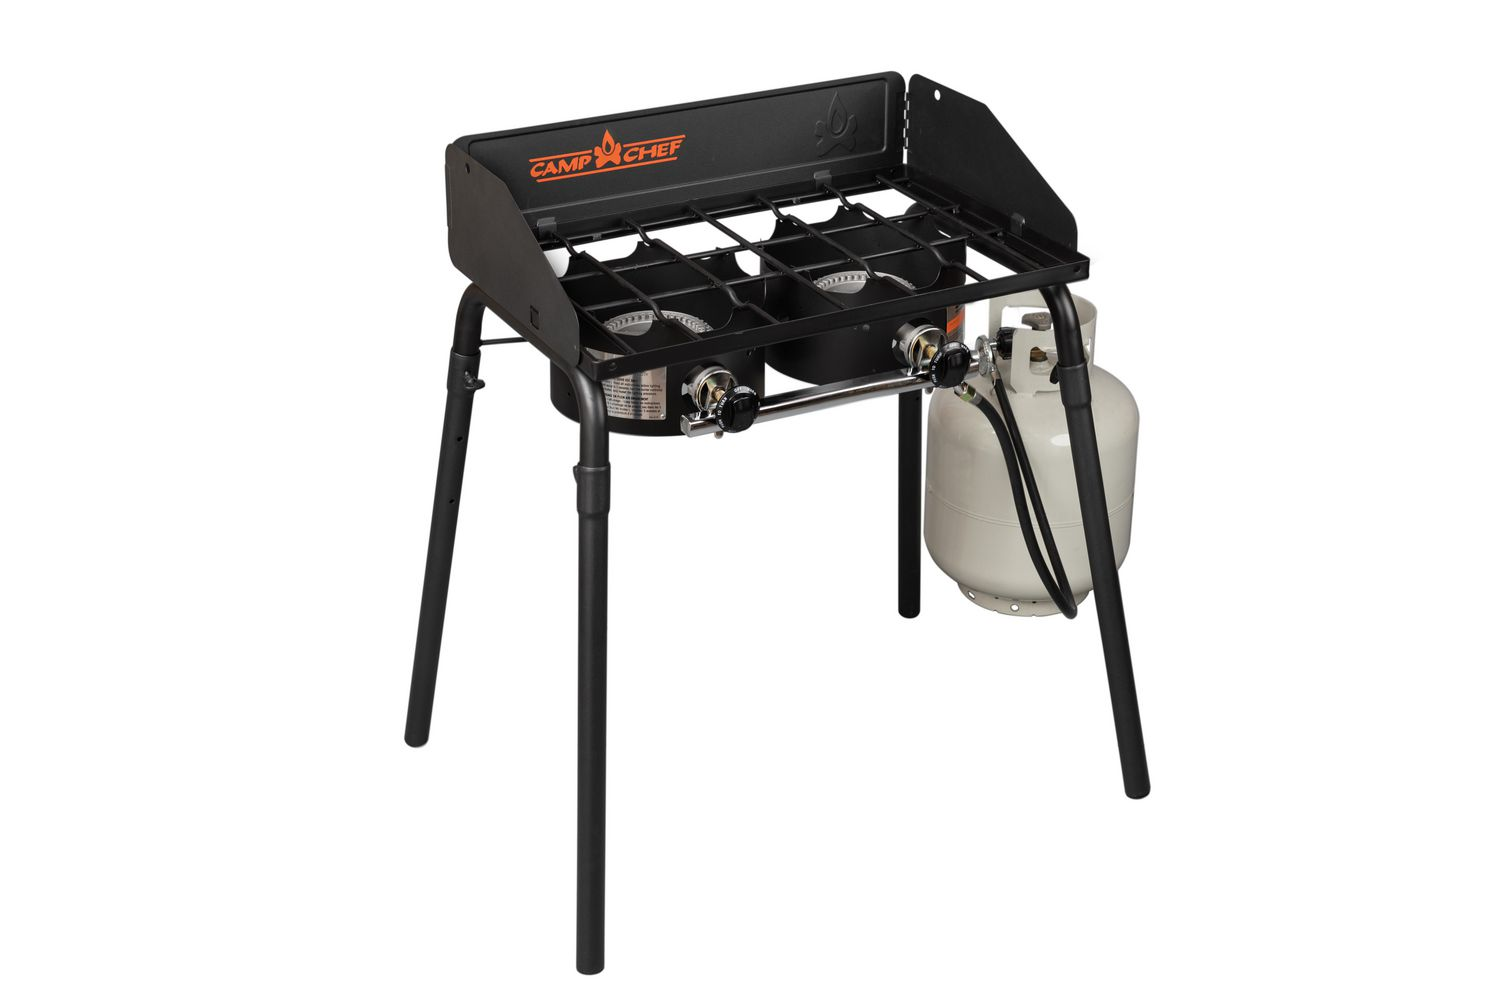 Denali Camp Stove Camp Chef Stove With Griddle Walmart Canada